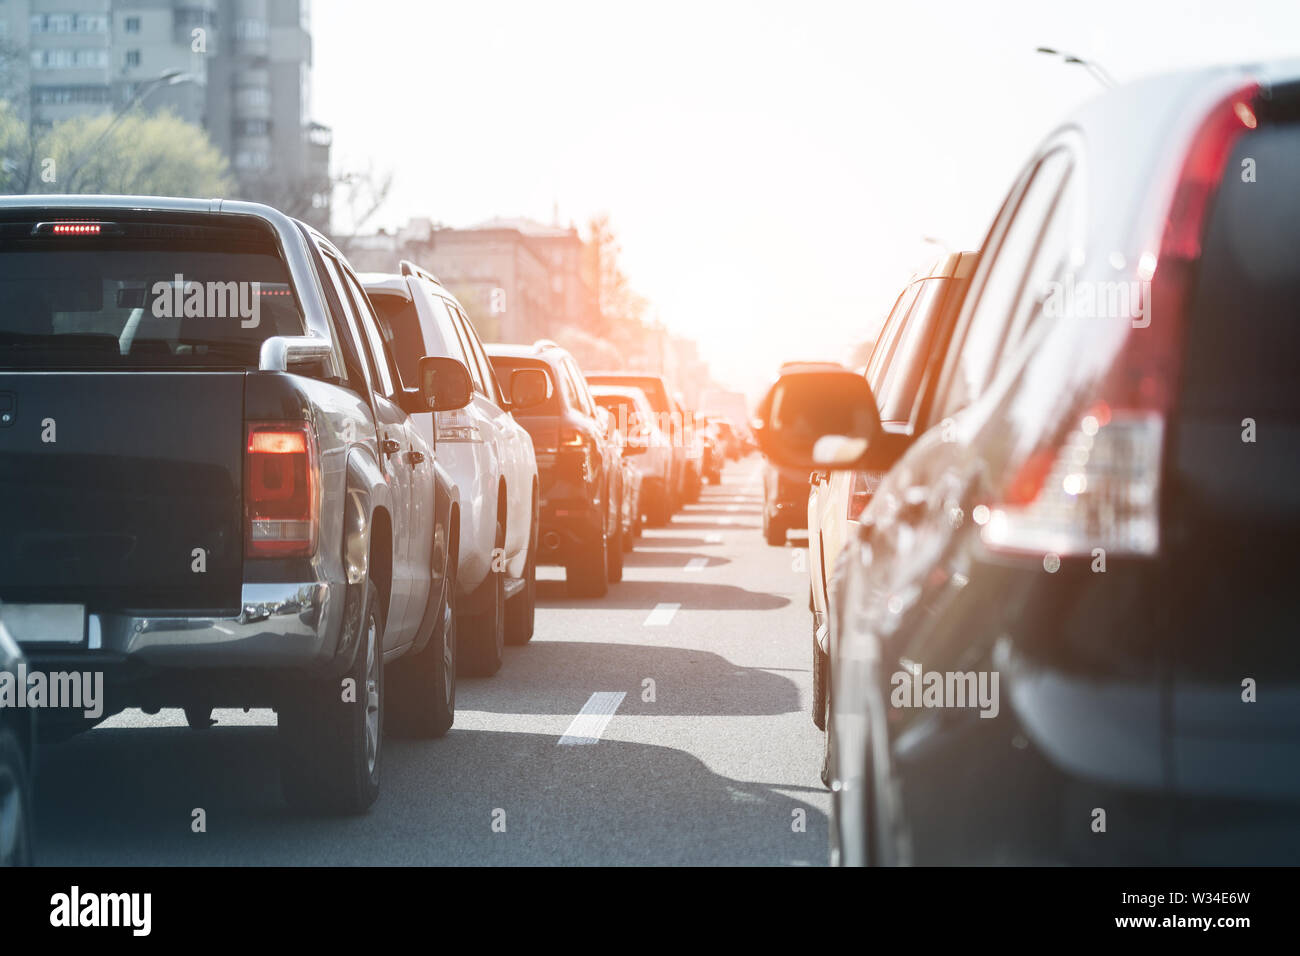 Evening traffic jam on busy city highway. Rows of car stck on road due to crush accident. Sunset metropolis rush hour scene. - Stock Image